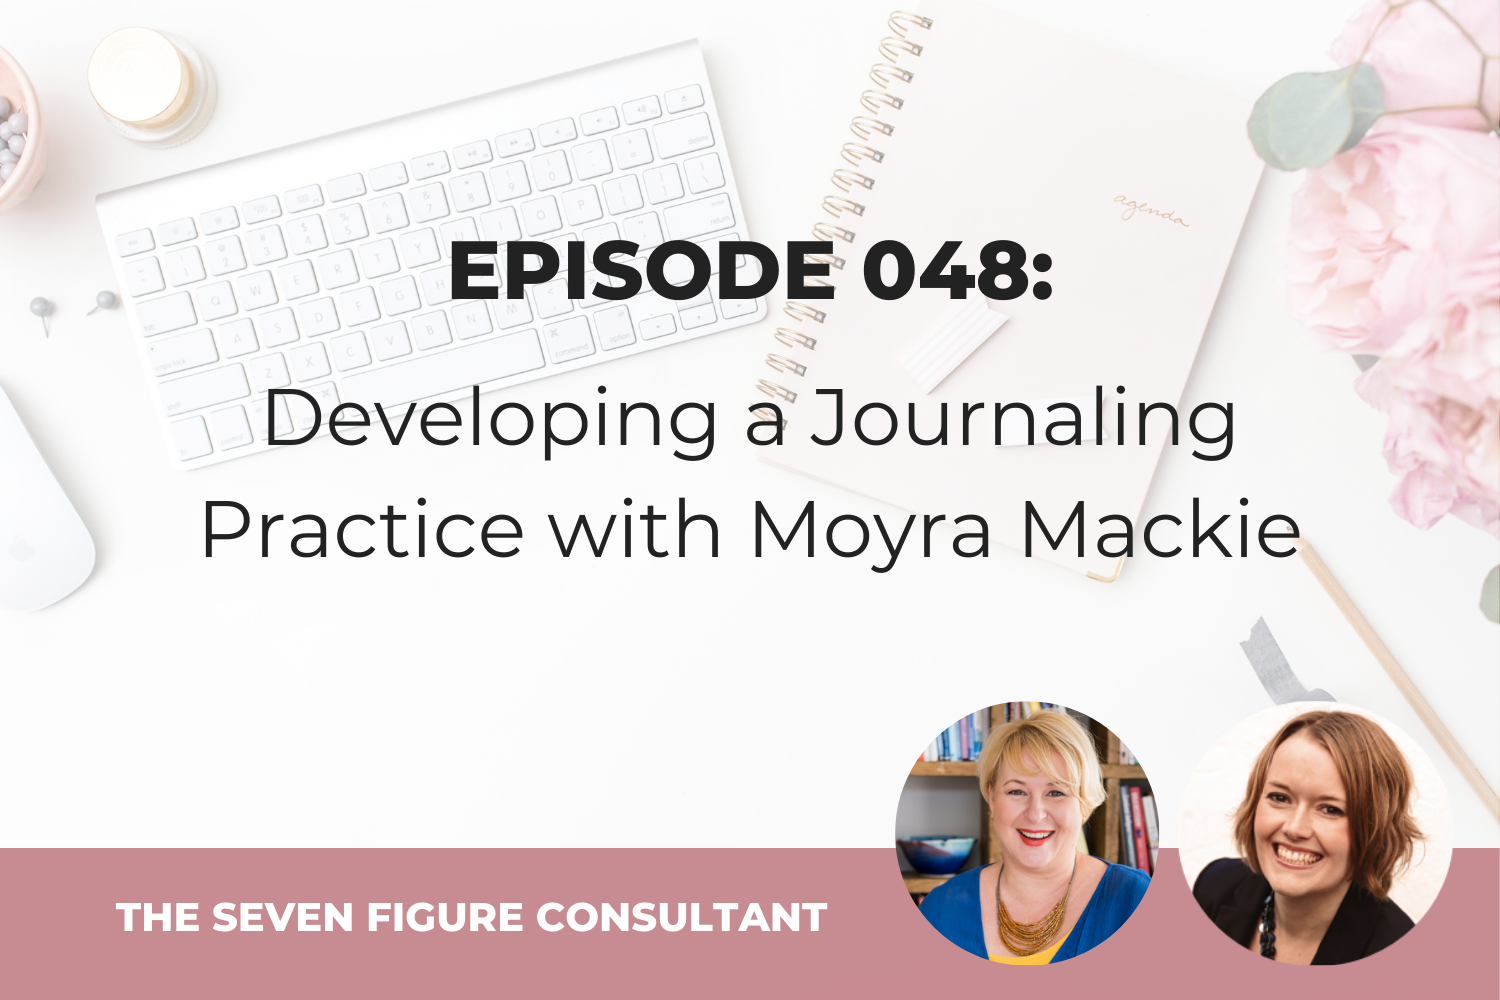 Episode 048: Developing a Journaling Practice with Moyra Mackie